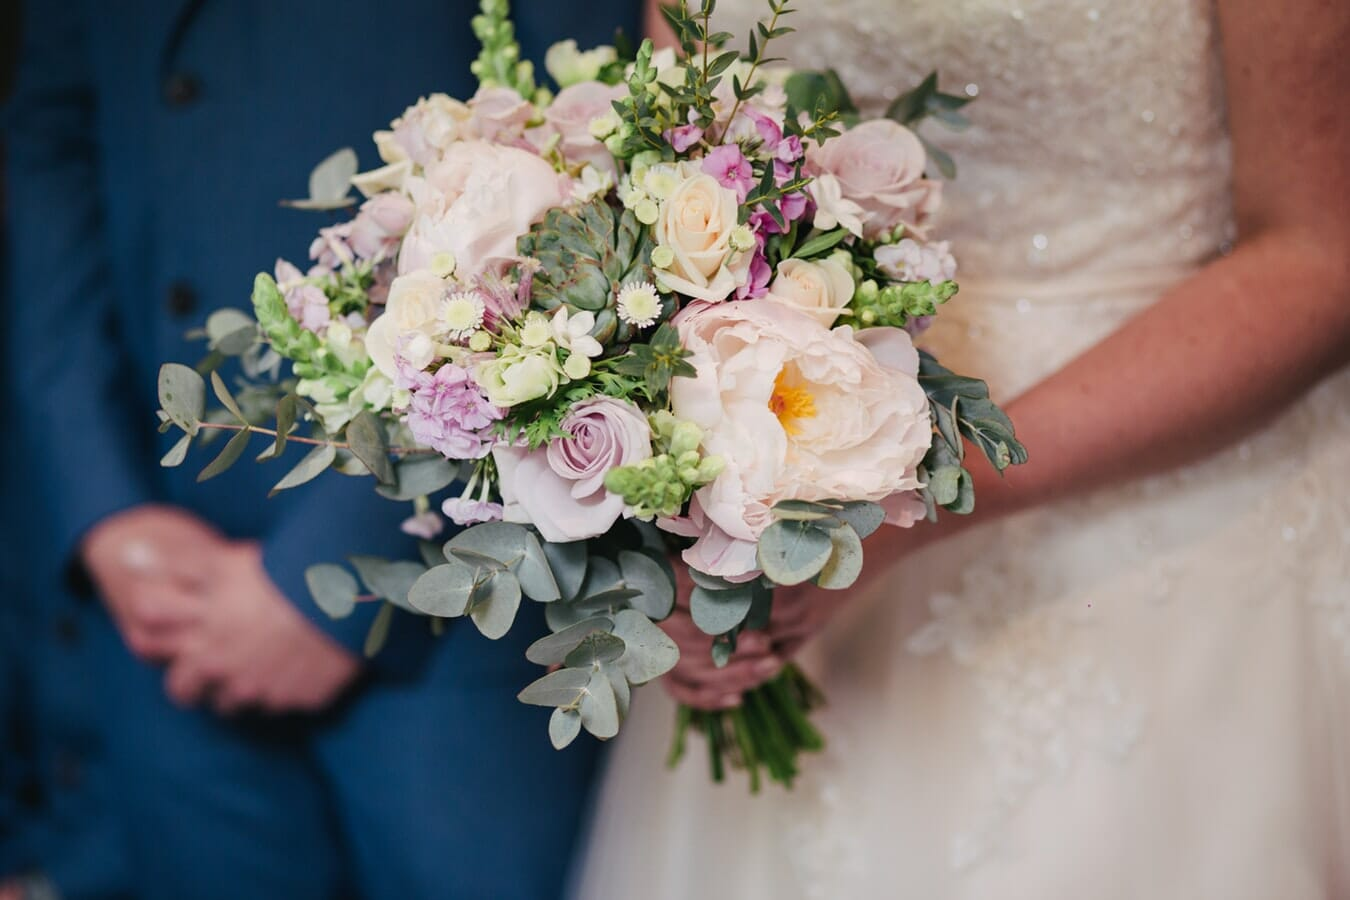 A Bride holding a wedding bouquet next to the Groom